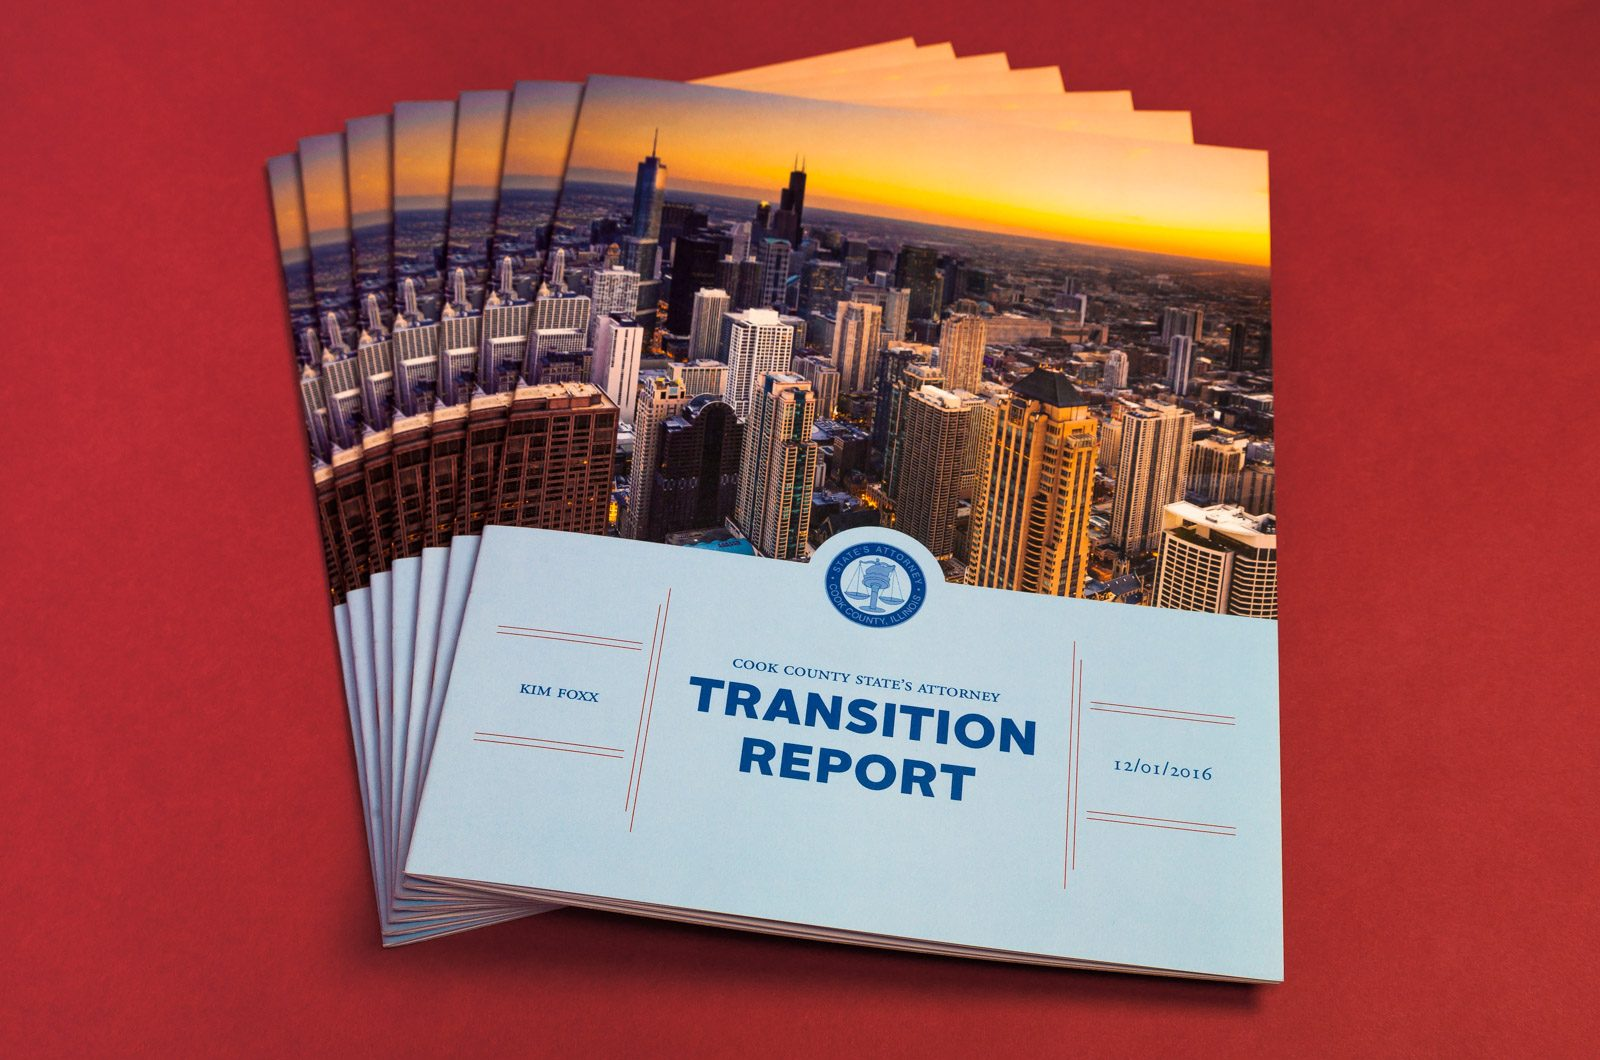 Transition Report Image